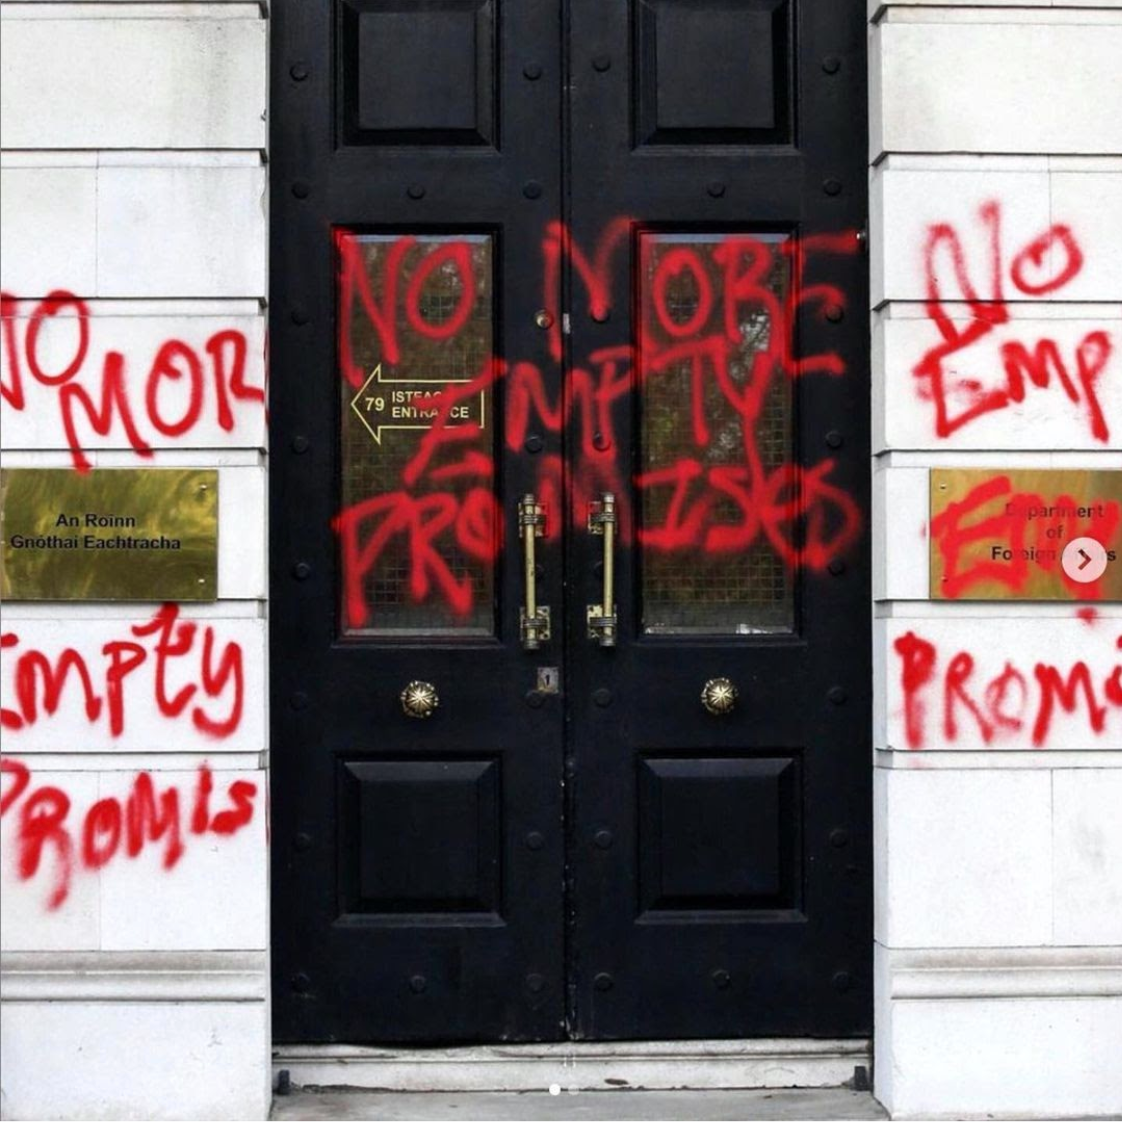 The door of the Department of Foreign Affairs in Dublin, Ireland, sprayed with red paint that spells out 'No More Empty Promises' three times.